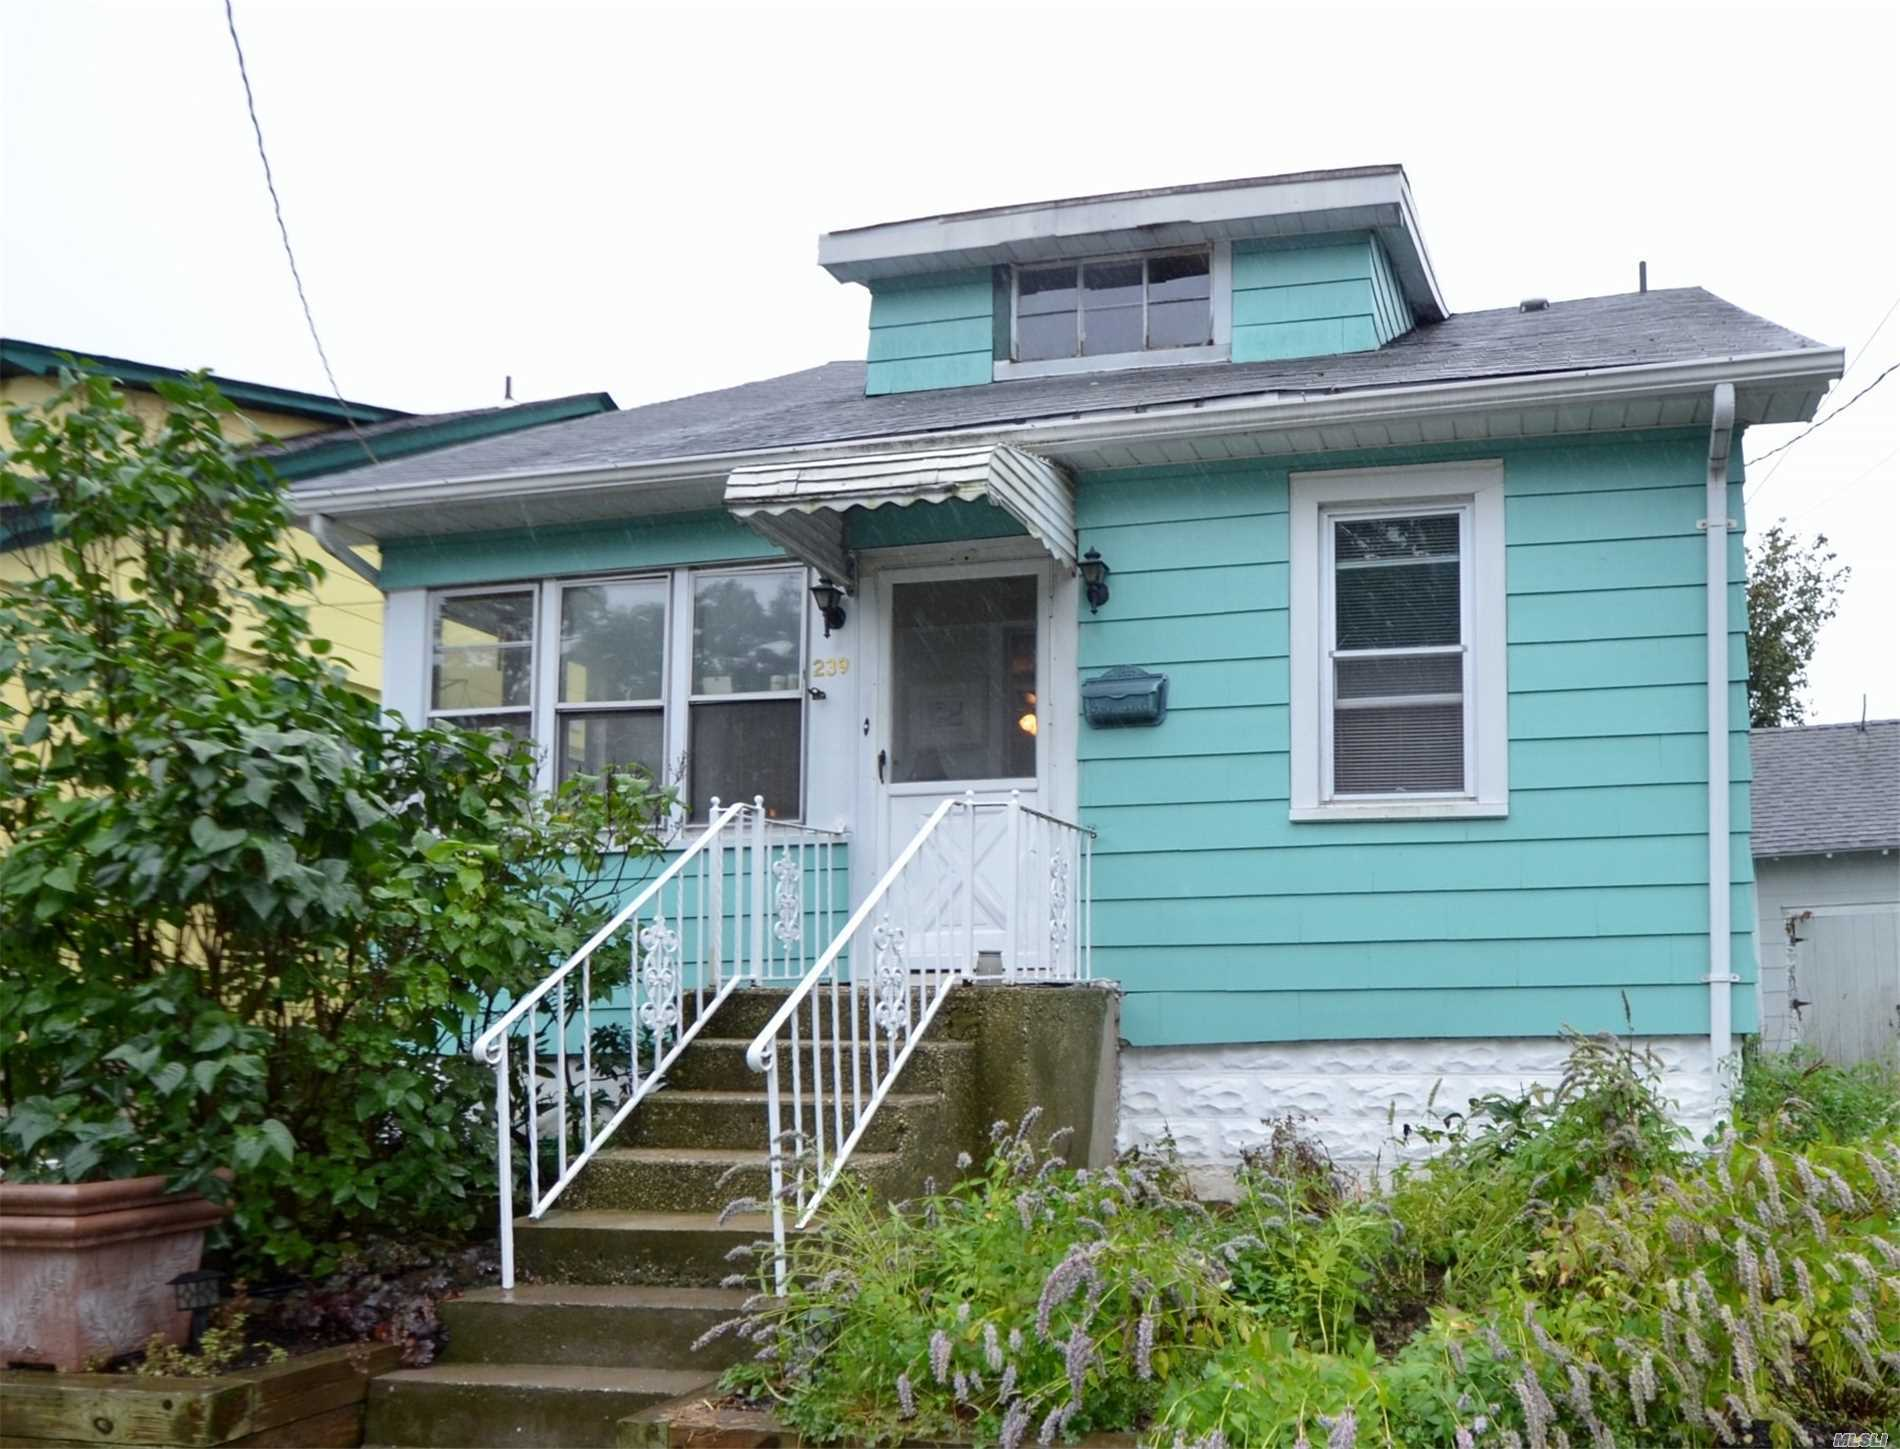 Great Village Location! Warm & Welcoming Cape! Enclosed Heated Front Porch, Lr, Eik, Master Bdrm, 1 Addl Bdrm, And Full Bath. 2nd Floor; Open Sitting Area And 2 Bdrms. Full Part Finished Basement W/Rec Rm, Laundry And Utilities. Across From Park! Award Winning North Shore Schools! A Must See!!